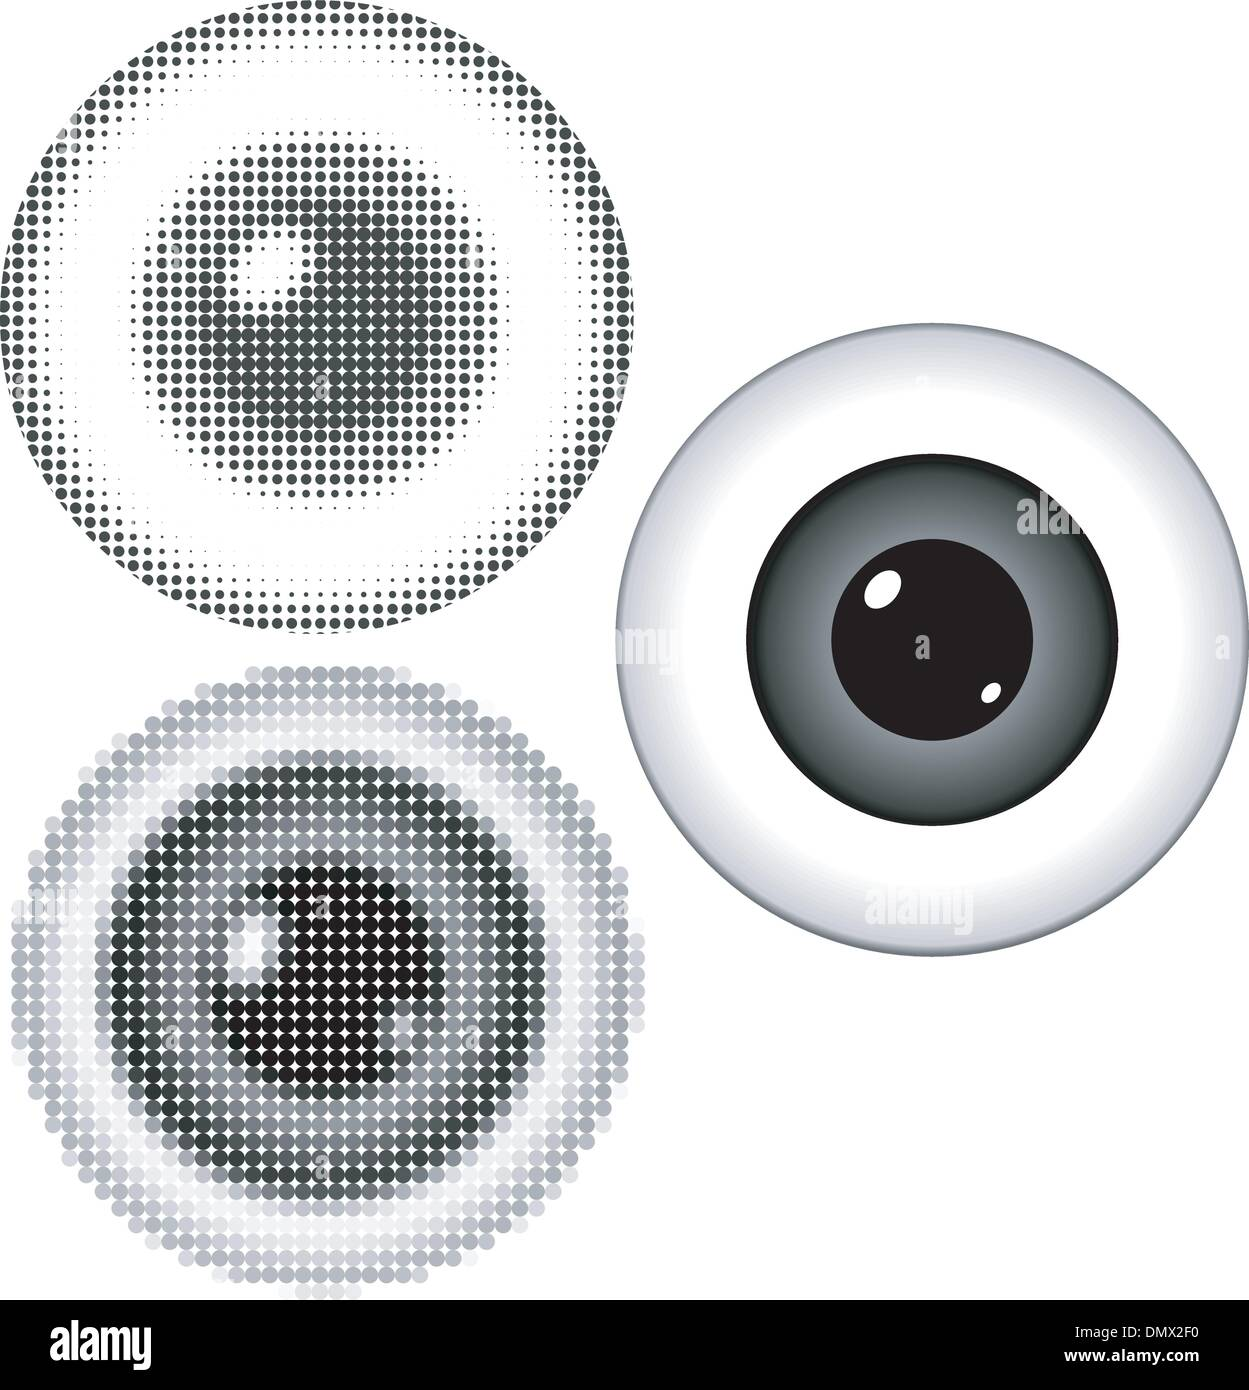 Vector illustration of stylized eyeball with a pupil - Stock Image